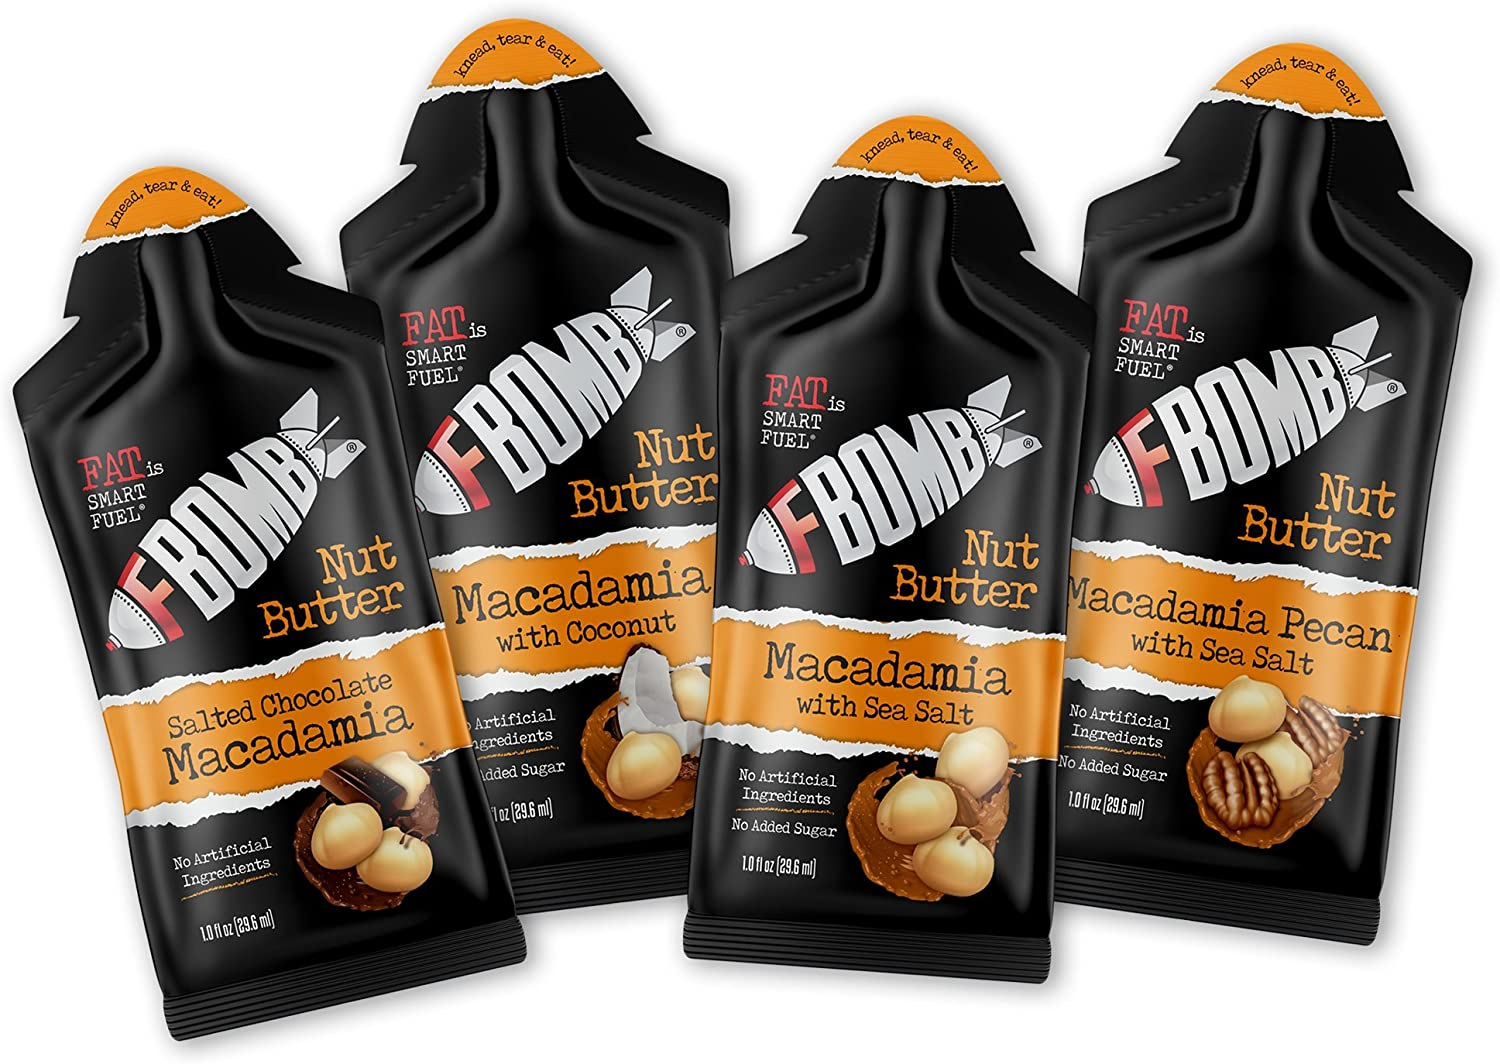 FBOMB Nut Butter 16 Variety Pack Image